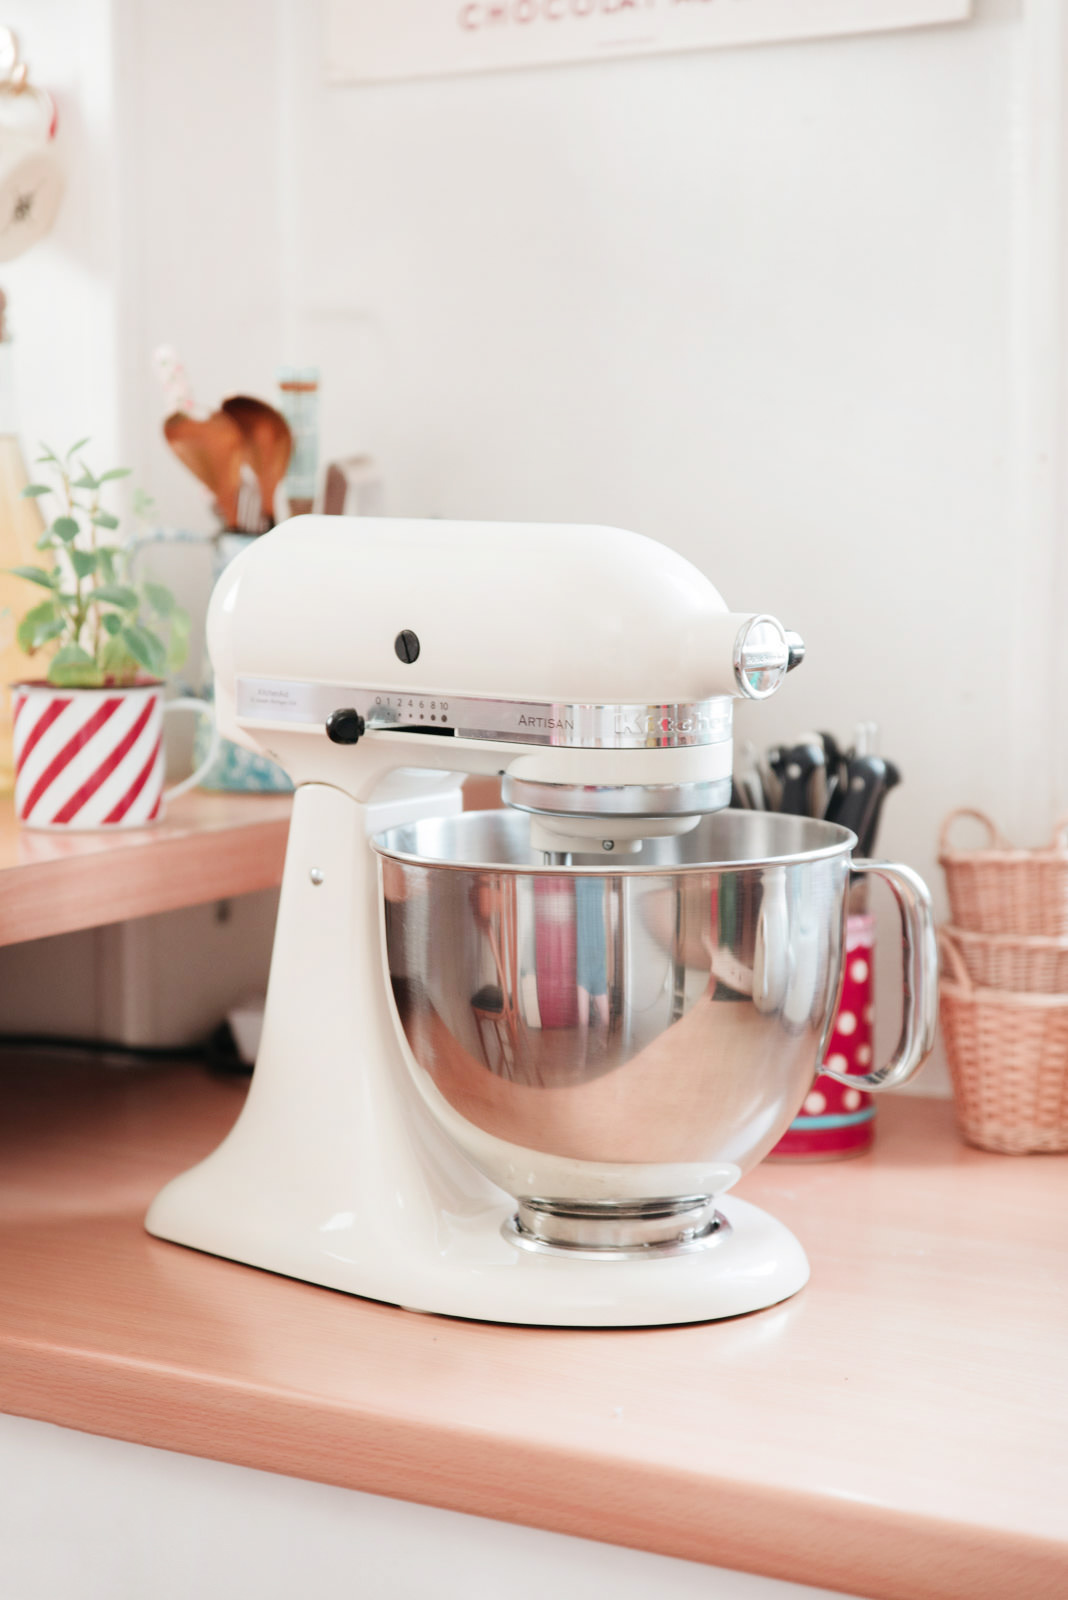 Blog-Mode-And-The-City-Lifestyle-Cinq-Petites-Choses-224-kitchen-aid